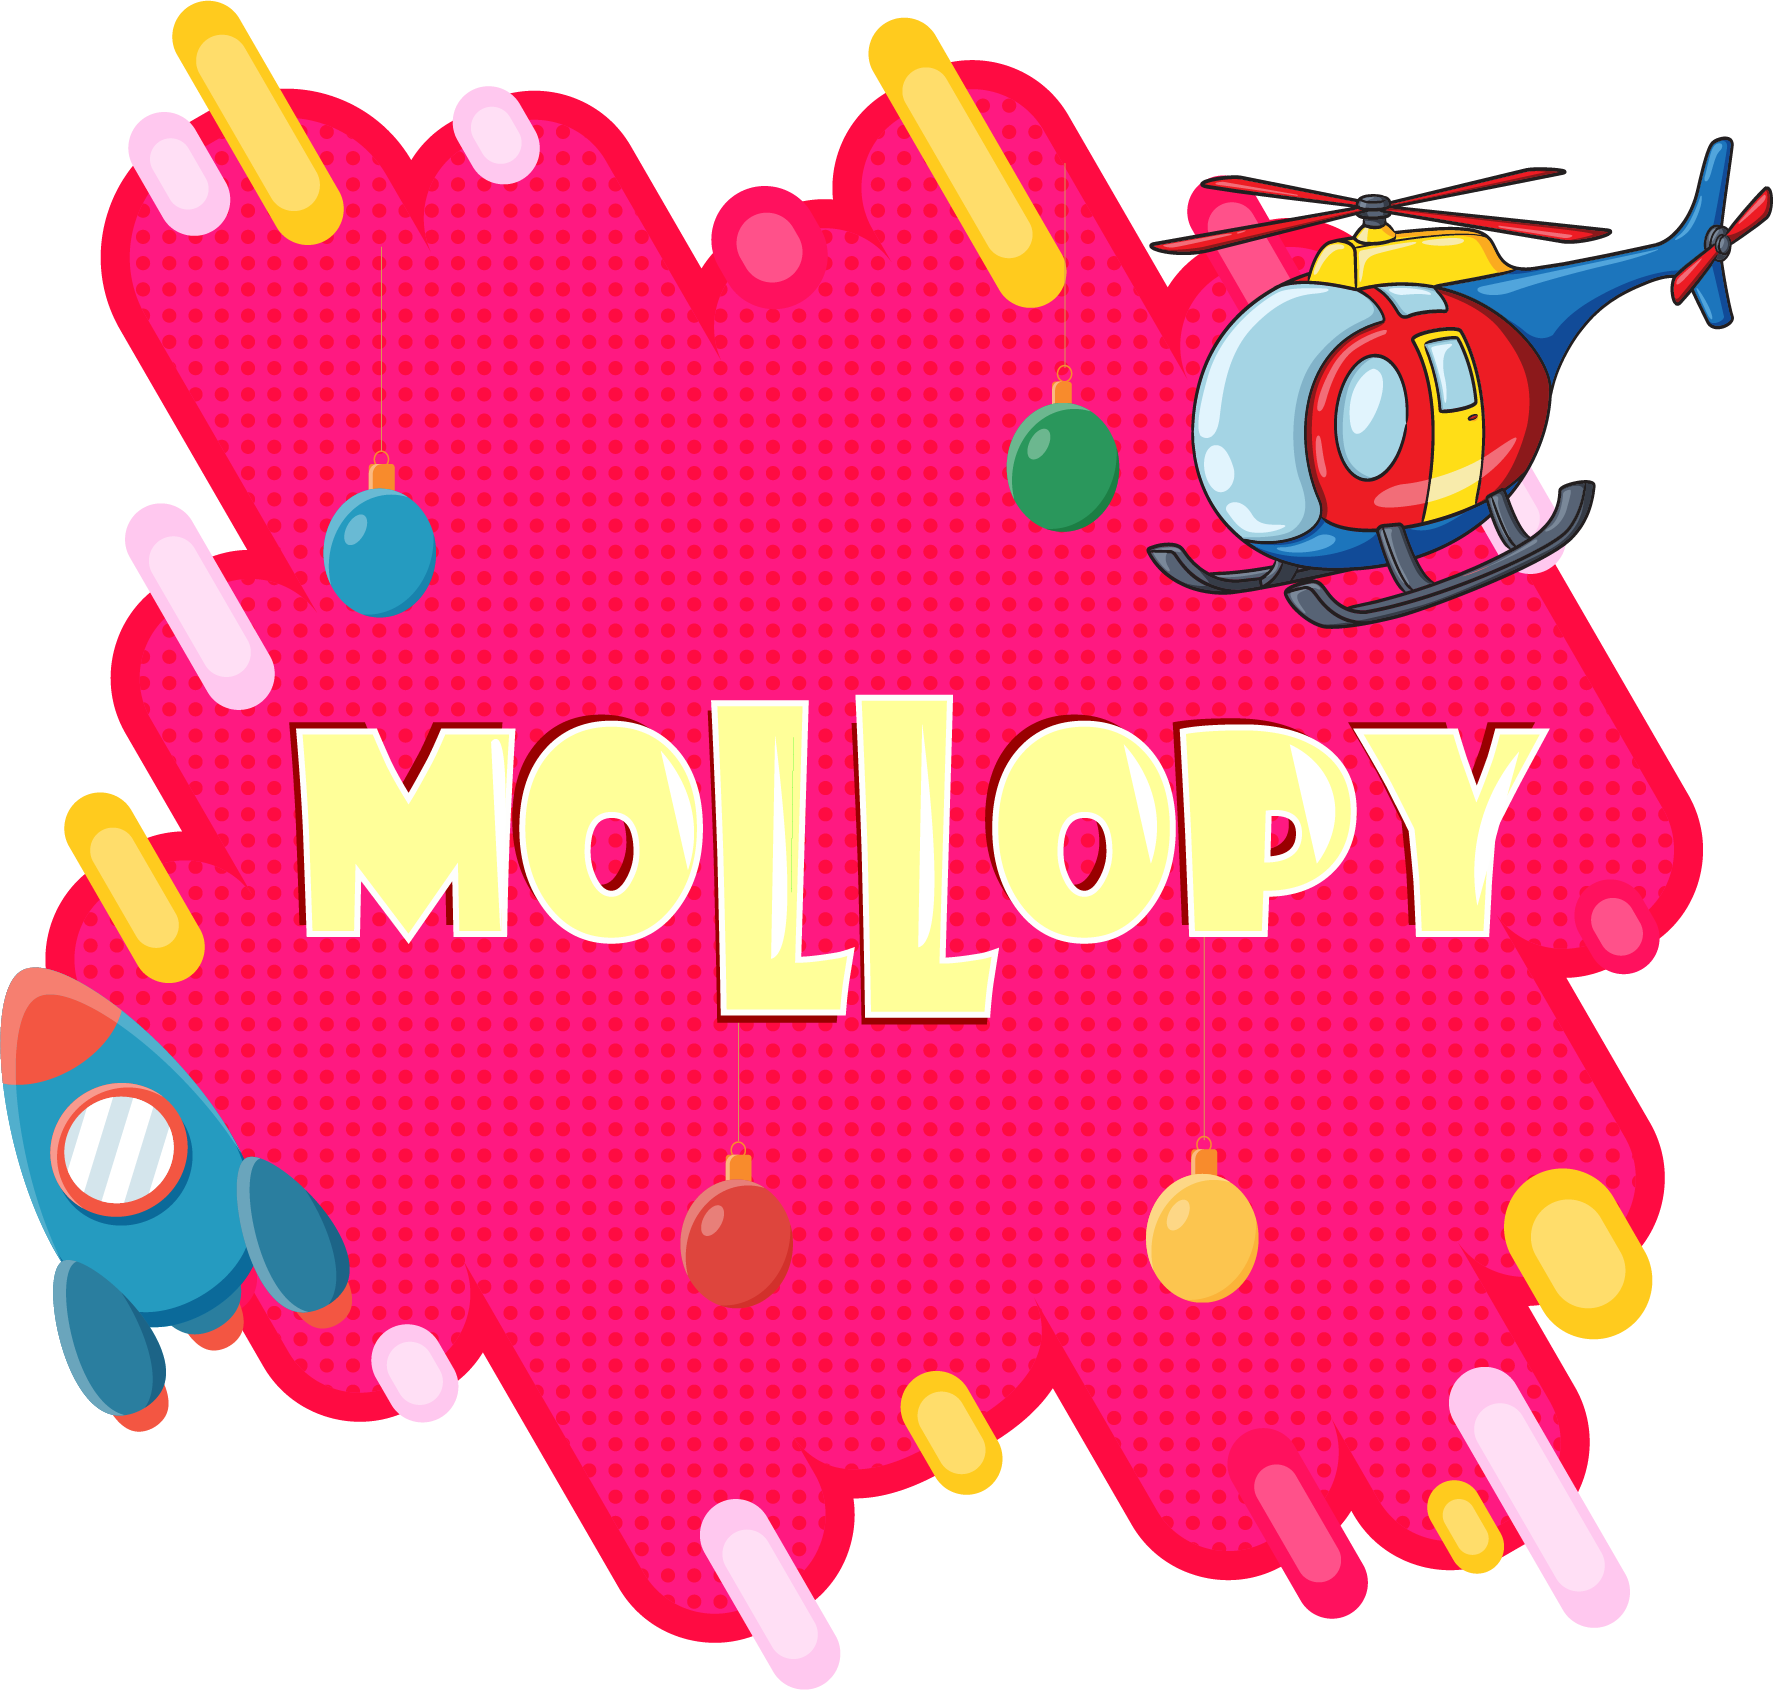 Mollopy Channel for Kids